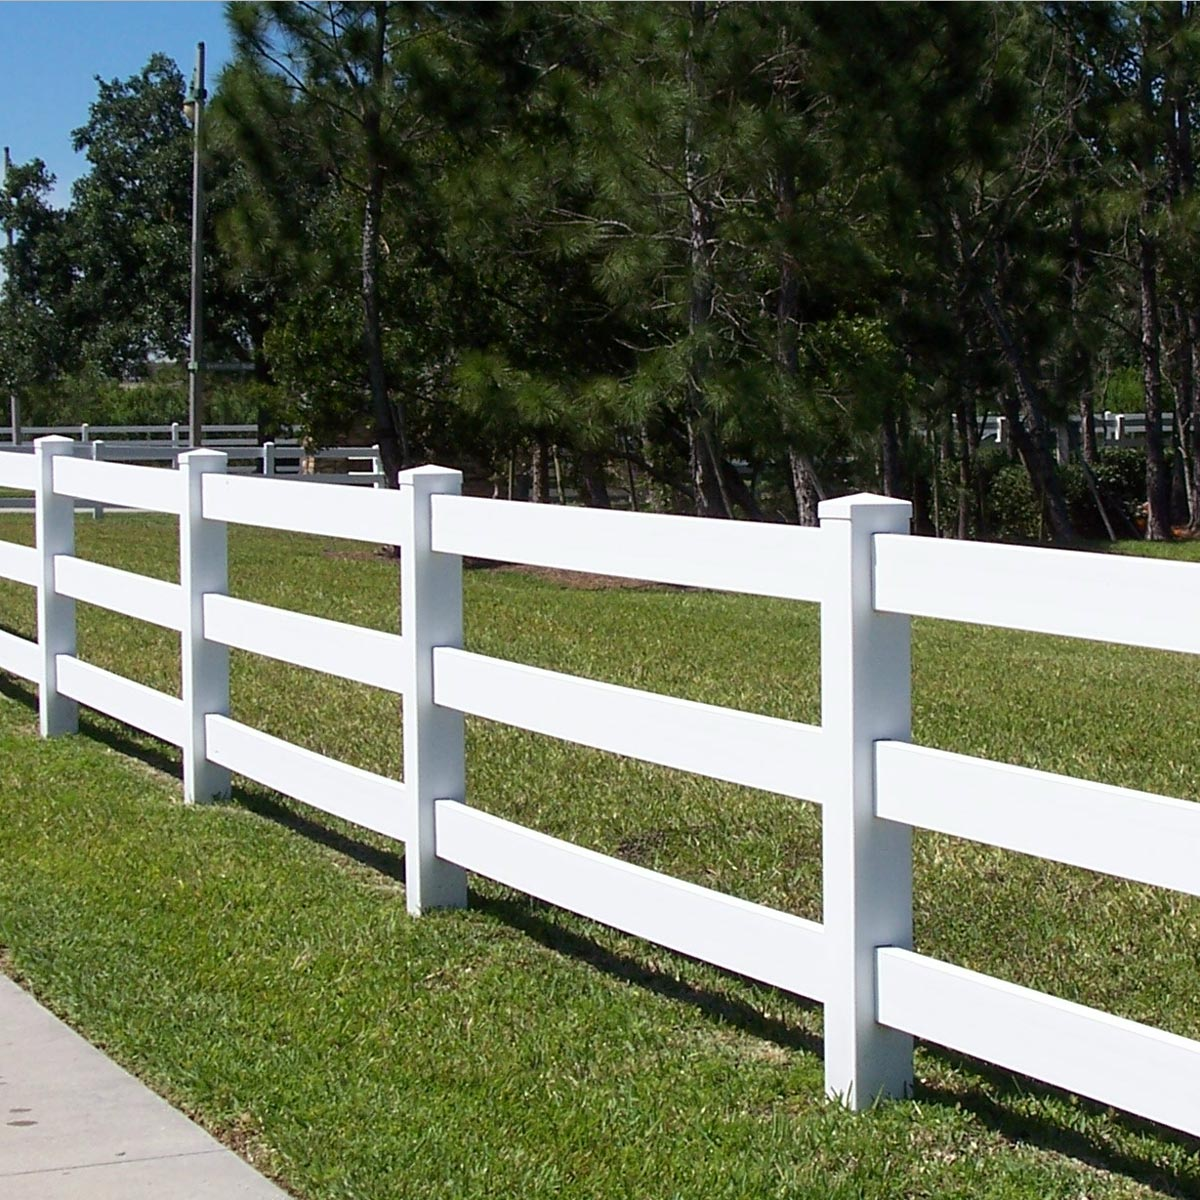 Pvc 3 Rail Horse Fencing Easy To Erect Requires Little